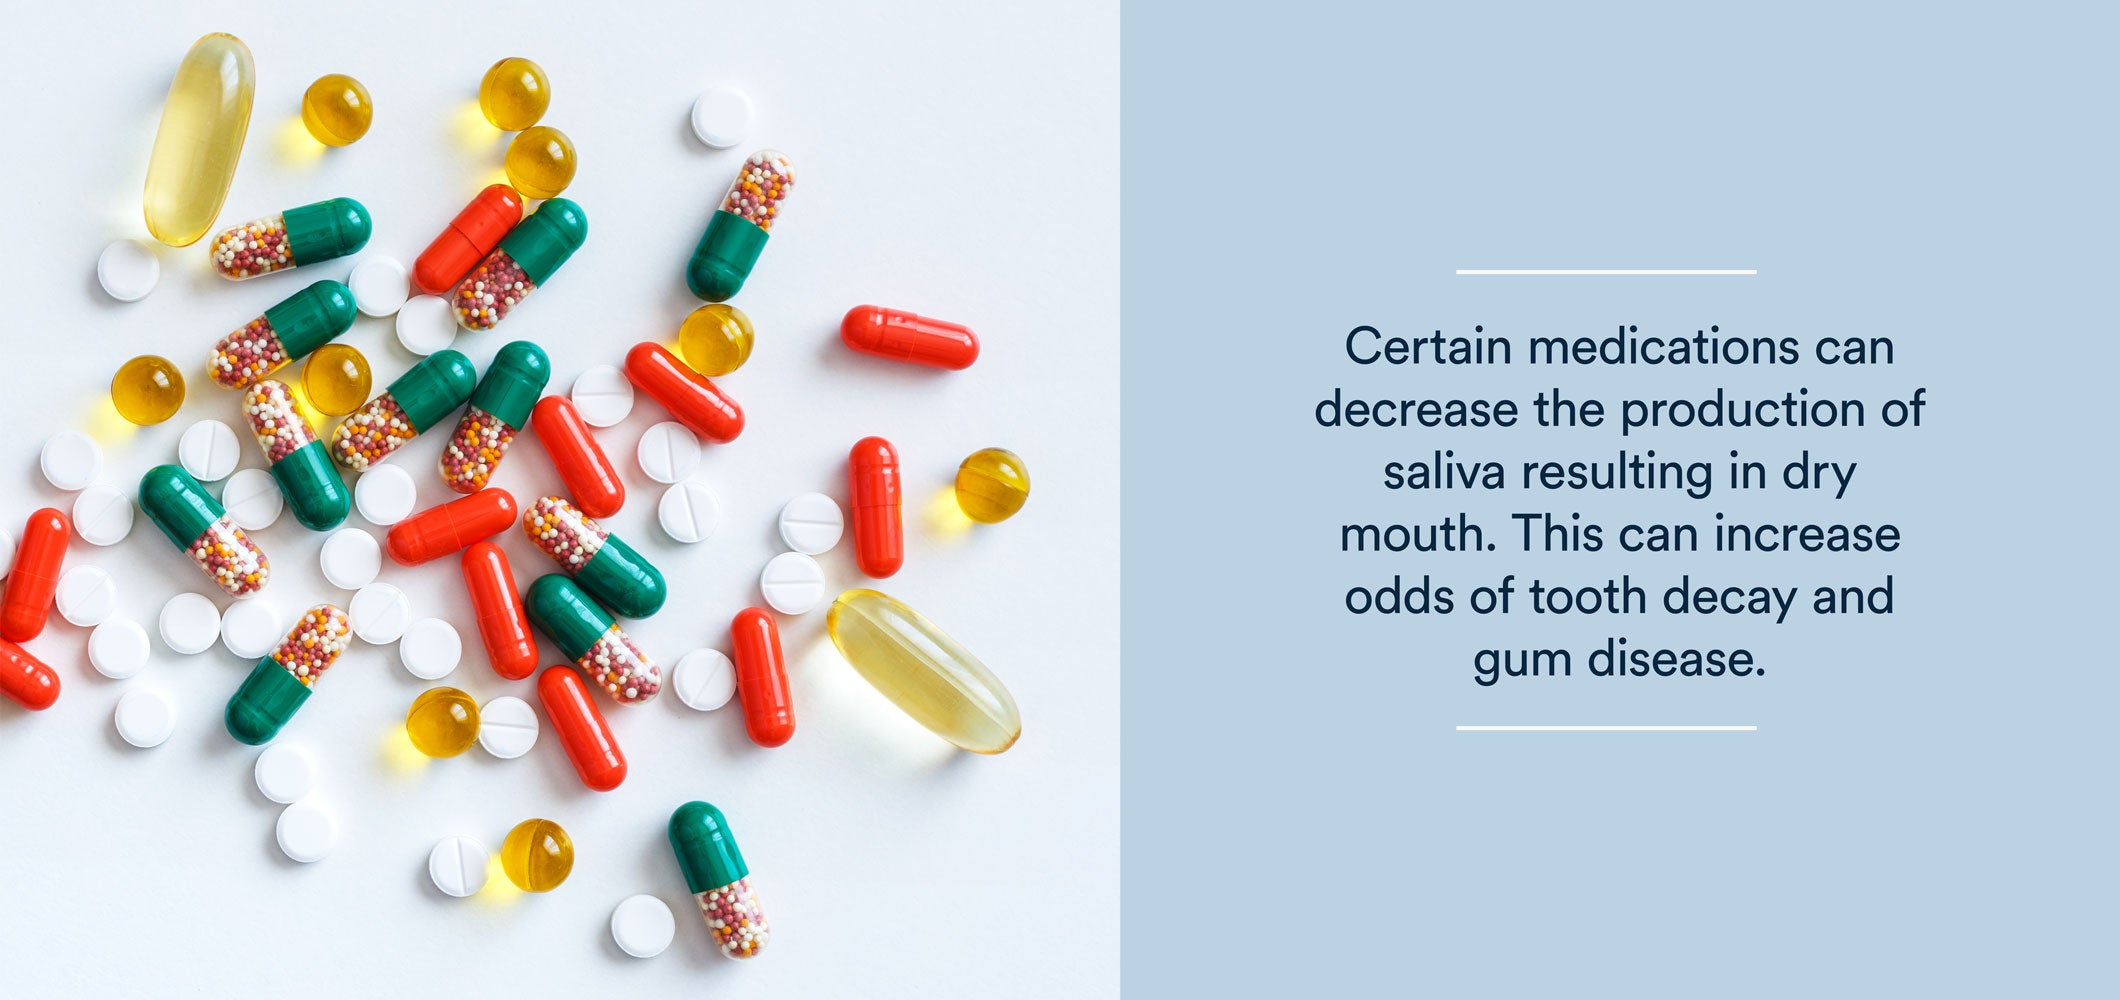 certain medications can decrease the production of saliva resulting in dry mouth.